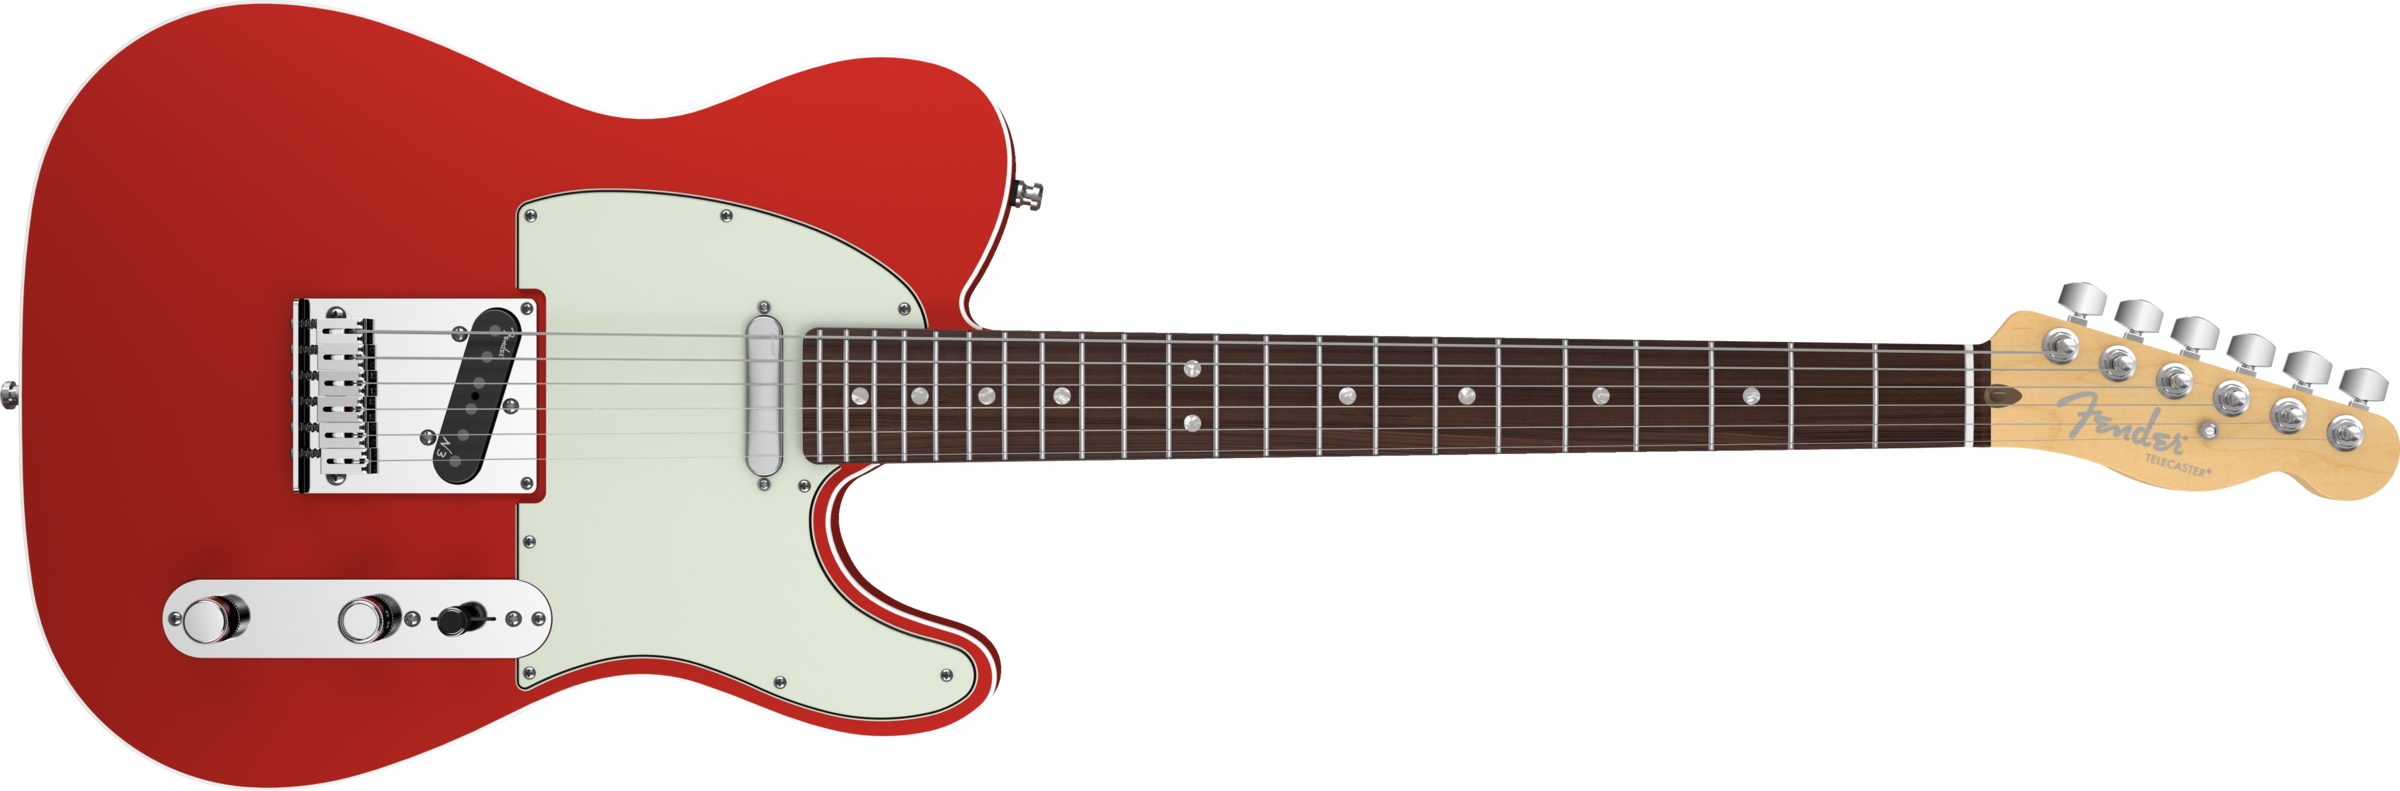 American Deluxe Tele - Fender, Transparent background PNG HD thumbnail